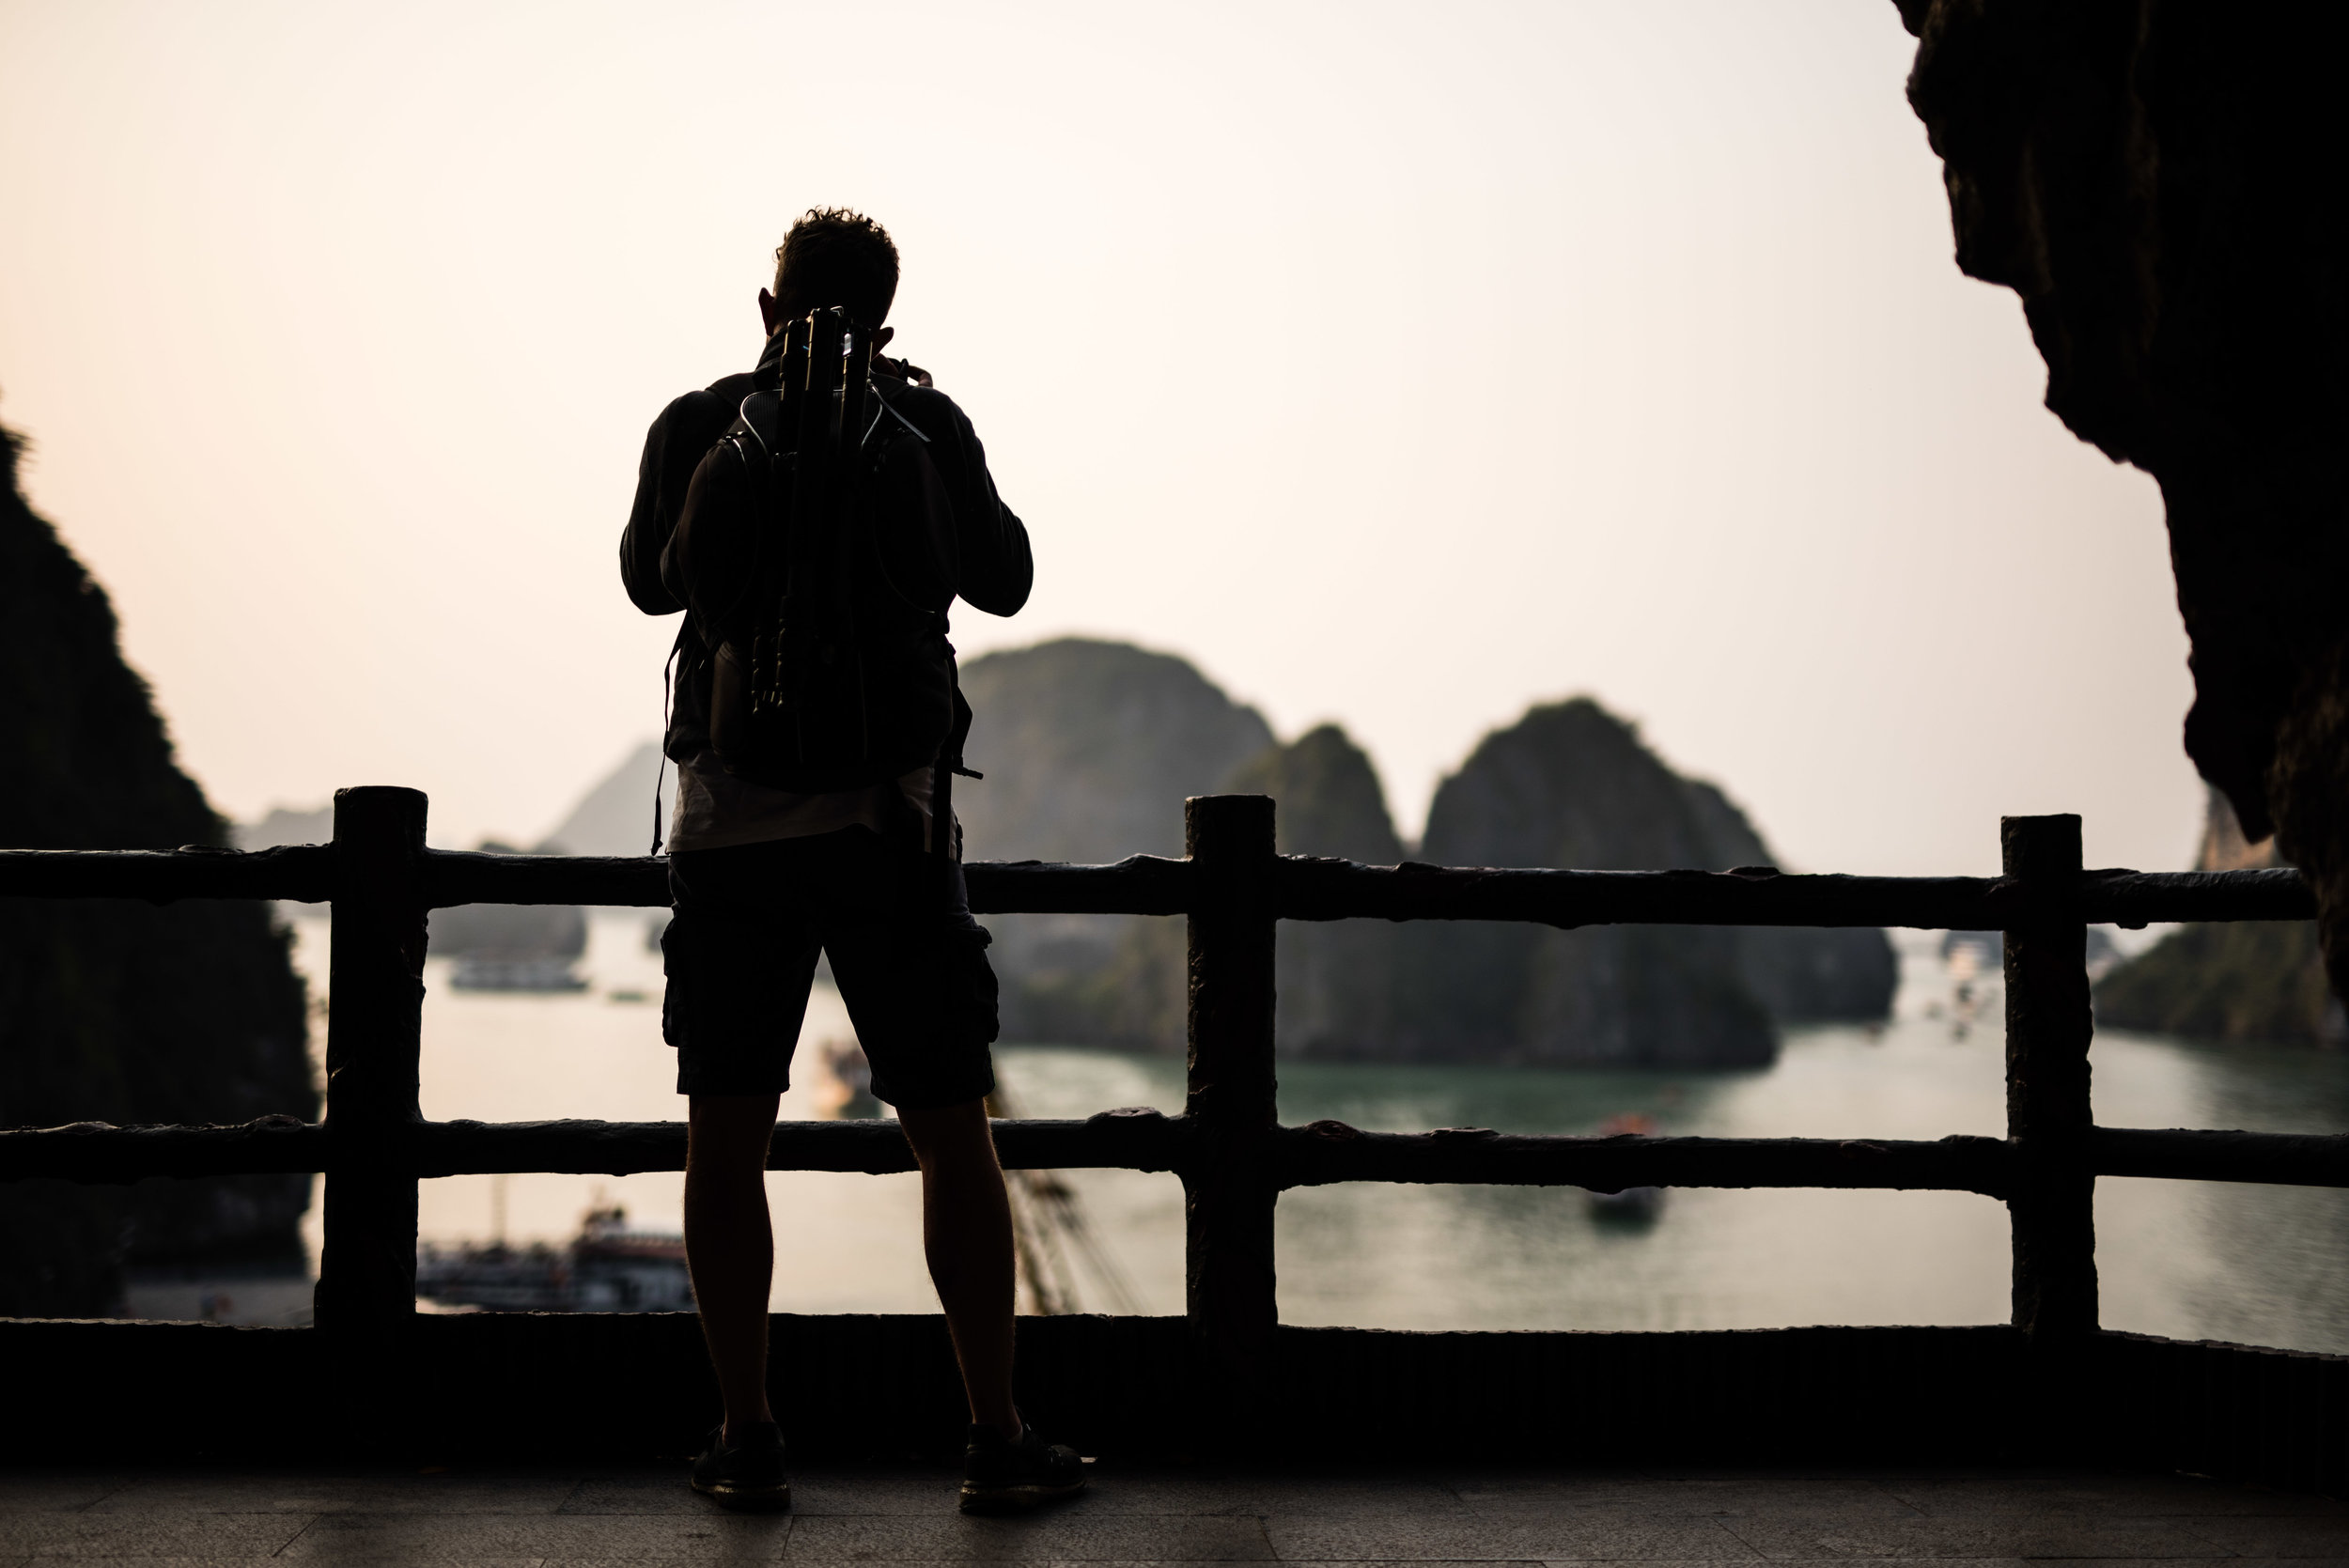 halong-bay---woody_26104134667_o.jpg